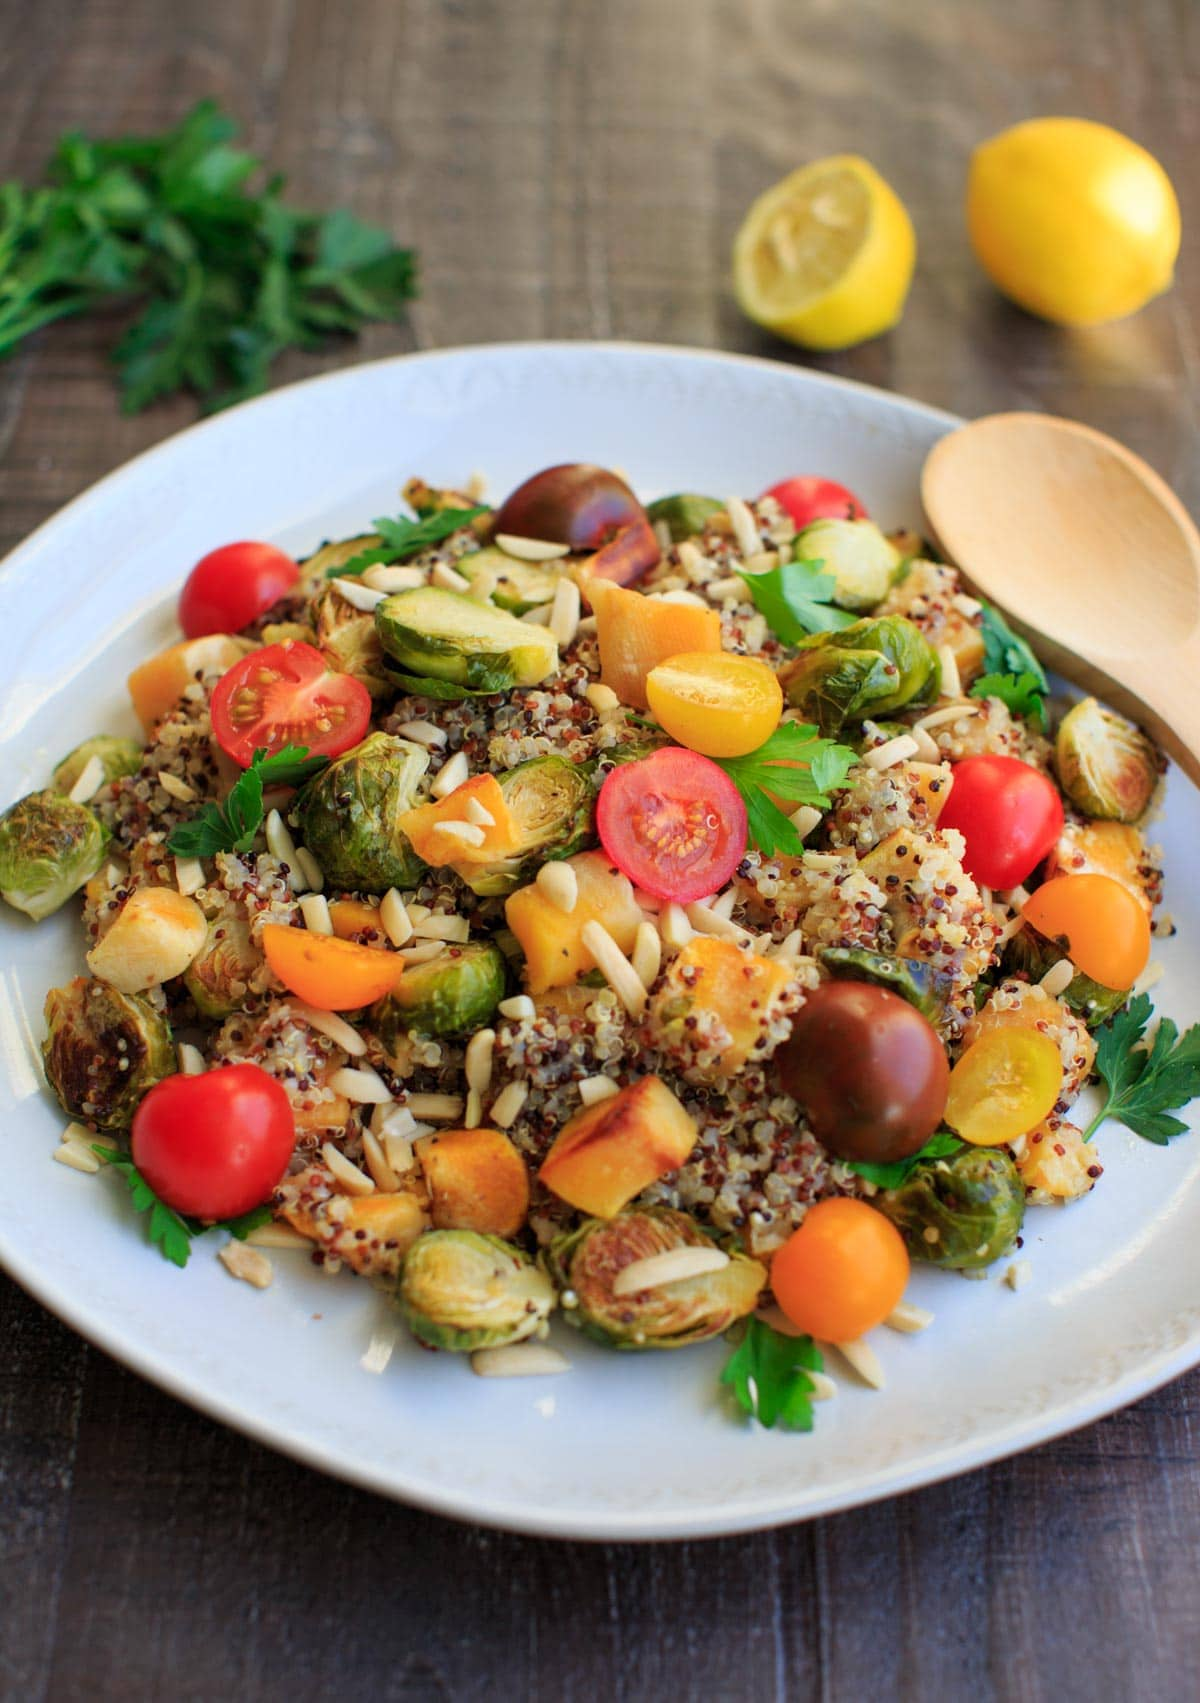 Fall Quinoa Salad with Brussels Sprouts, Butternut Squash, Tomatoes, Almonds, Lemon and Parsley